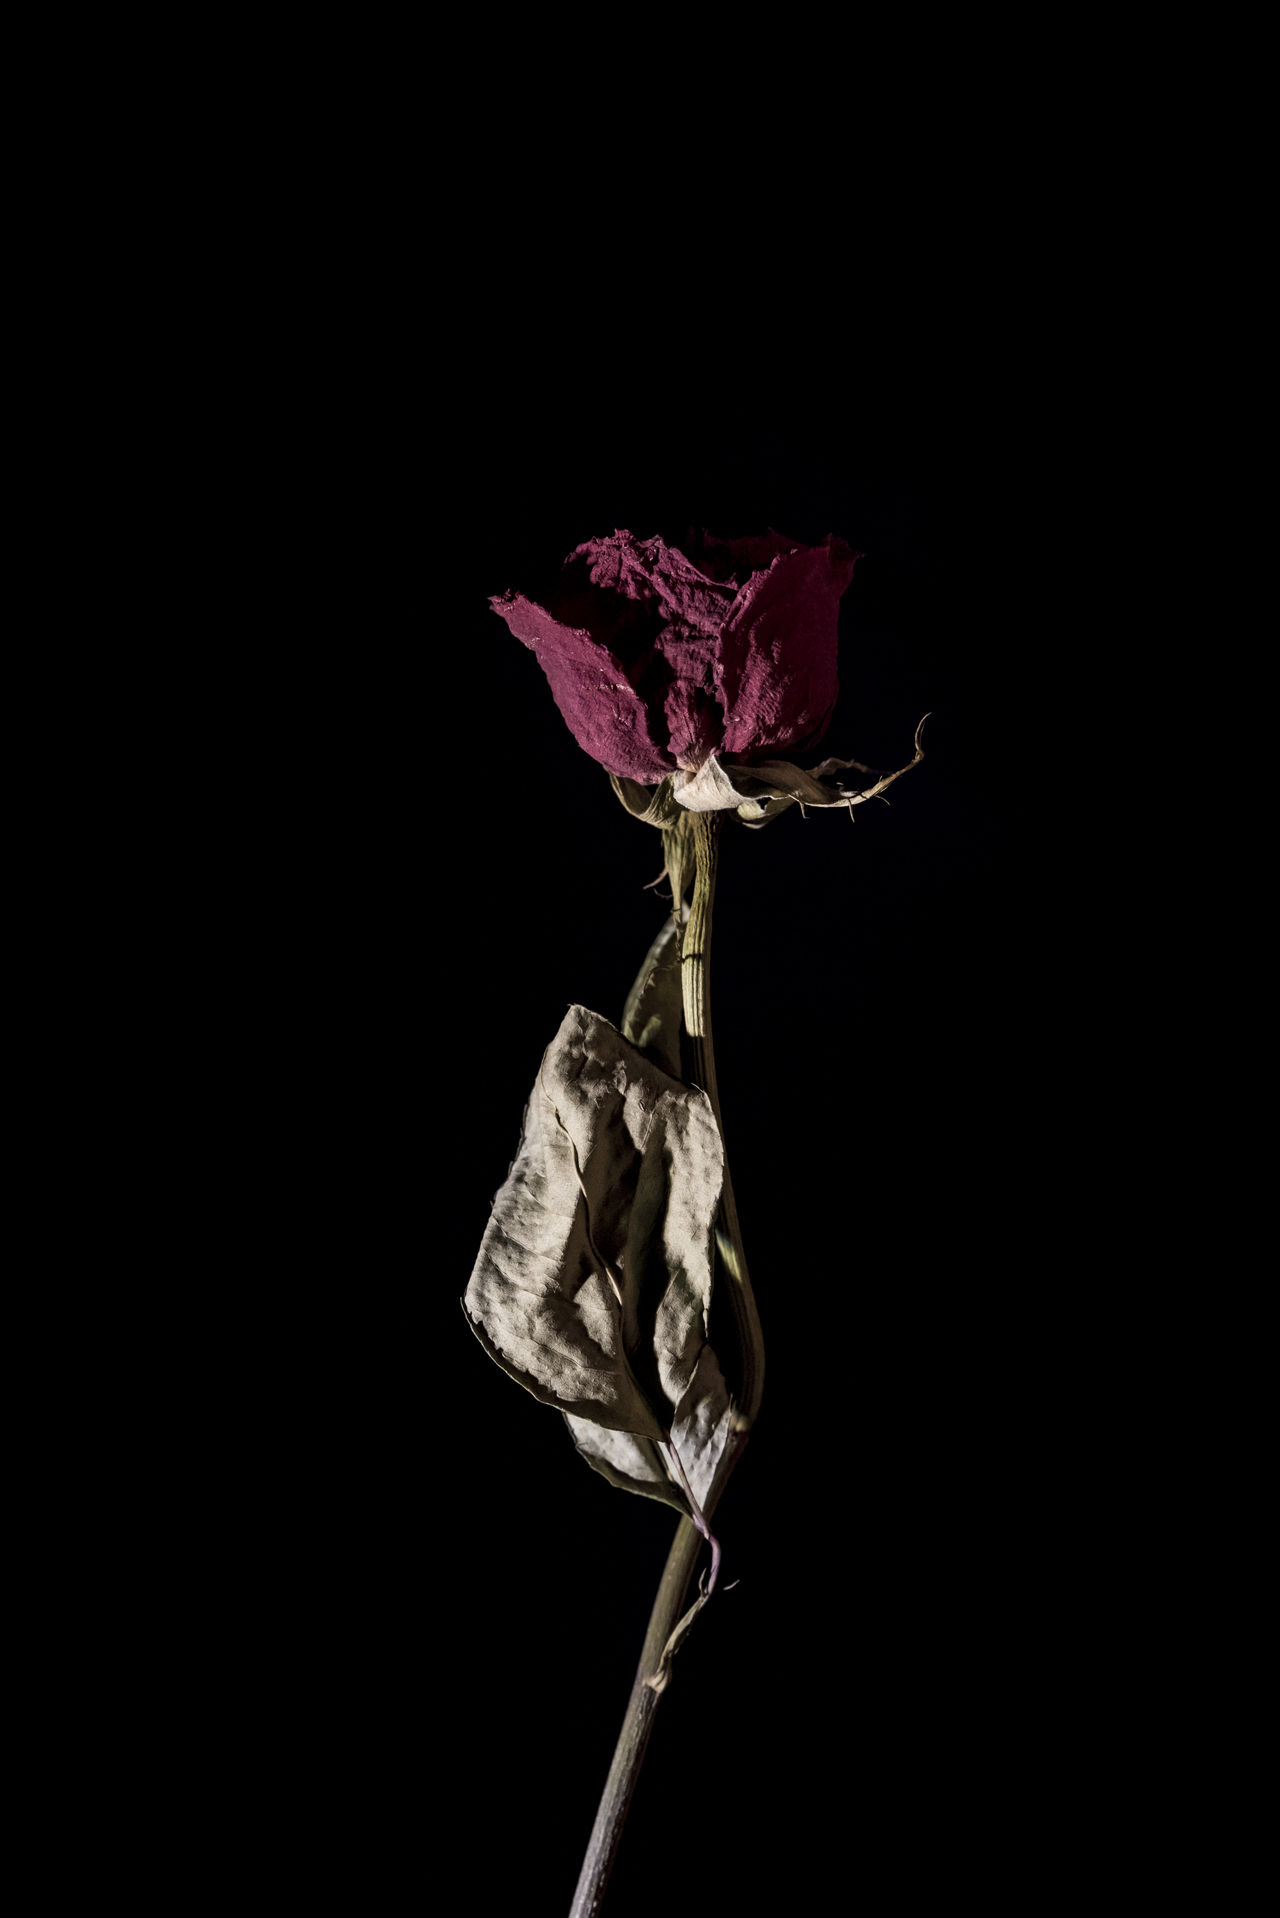 Wilted red rose with black background. Studio photography. Beauty In Nature Black Background Close-up Contrast Darkness And Light Dried Plant Flower Fragility Minimal Nature Petal Plant Portrait Photography Red Rose Rose - Flower Rose🌹 Shadow And Light Shadow-art Shadowplay Simple Spotlight Stem Studio Photography Studio Shoot Wilted Plant